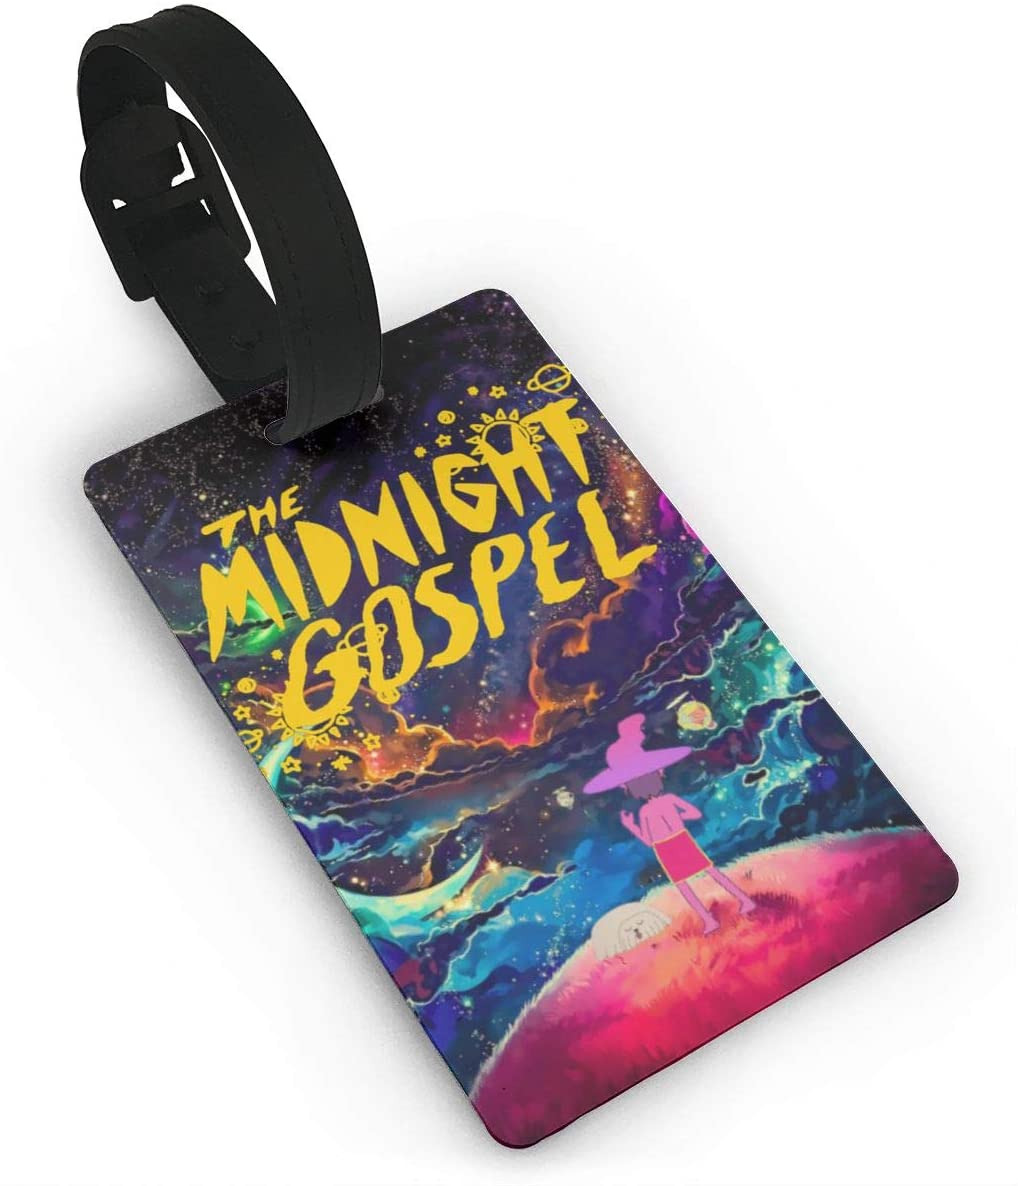 Pooizsdzzz The Midnight Gospel Luggage Tags is PVC Material, Durable Very Suitable for Men and Women in Luggage